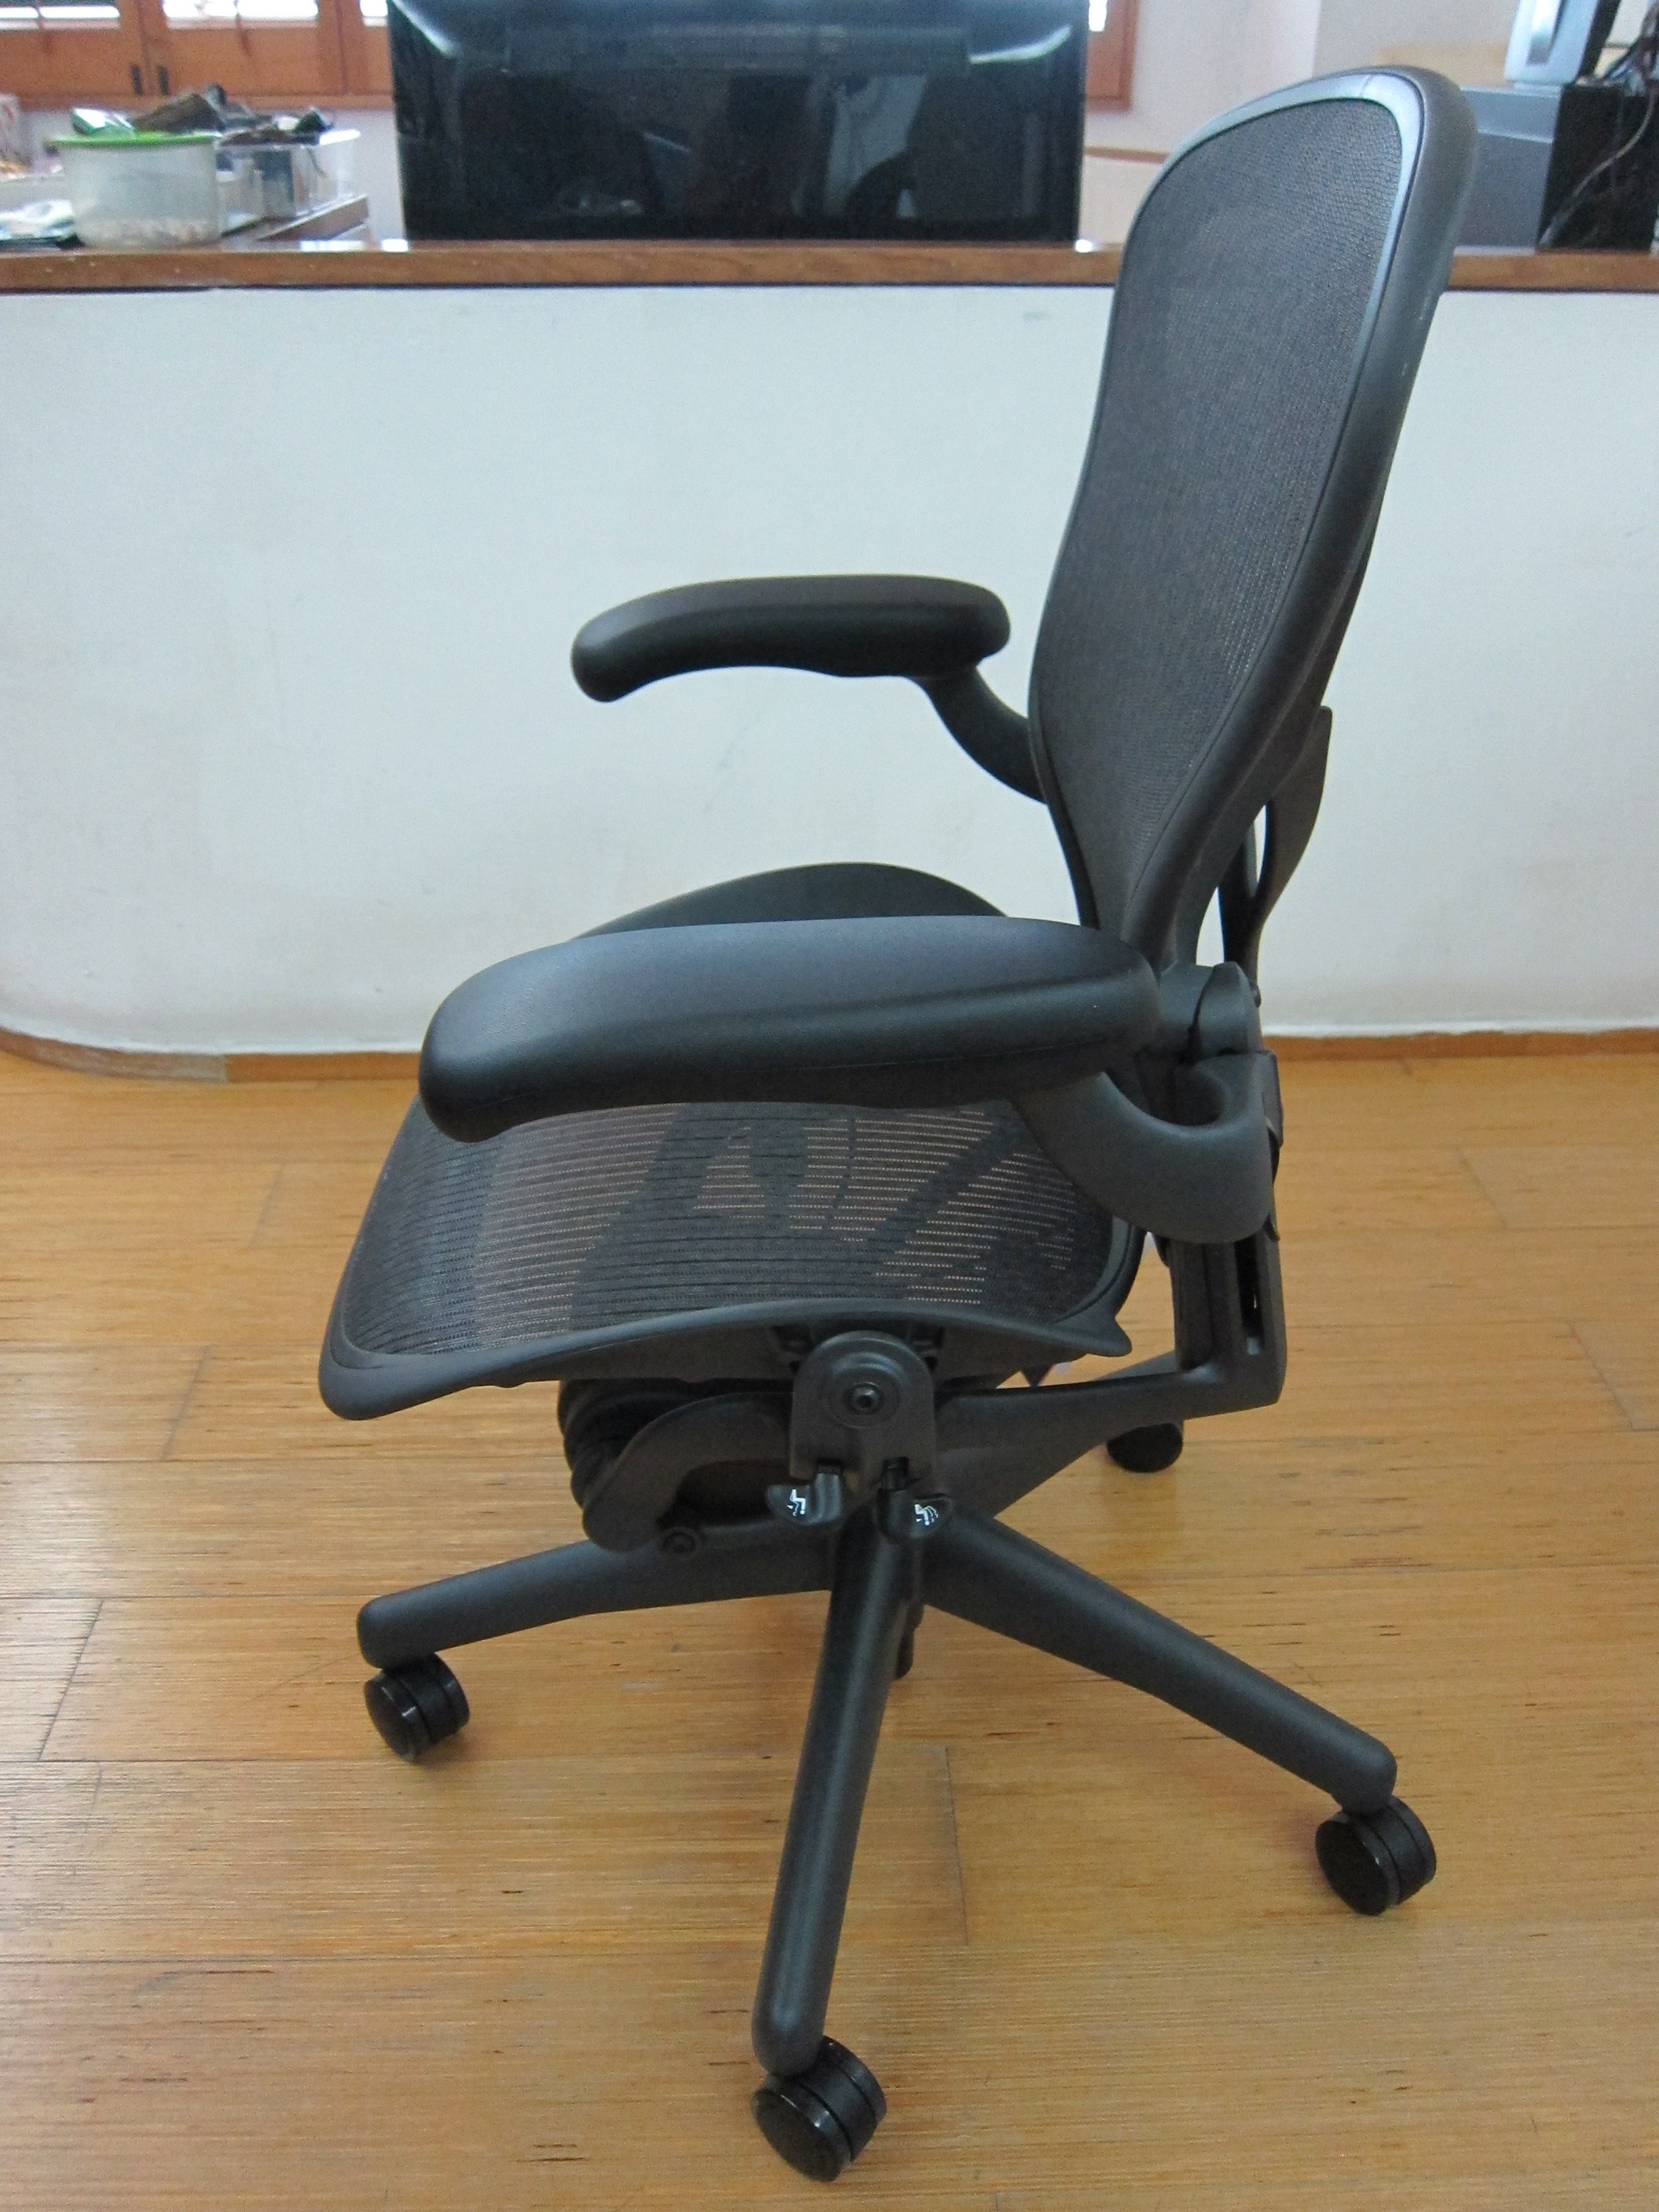 posturefit chair folding japanese herman miller aeron  blog lesterchan